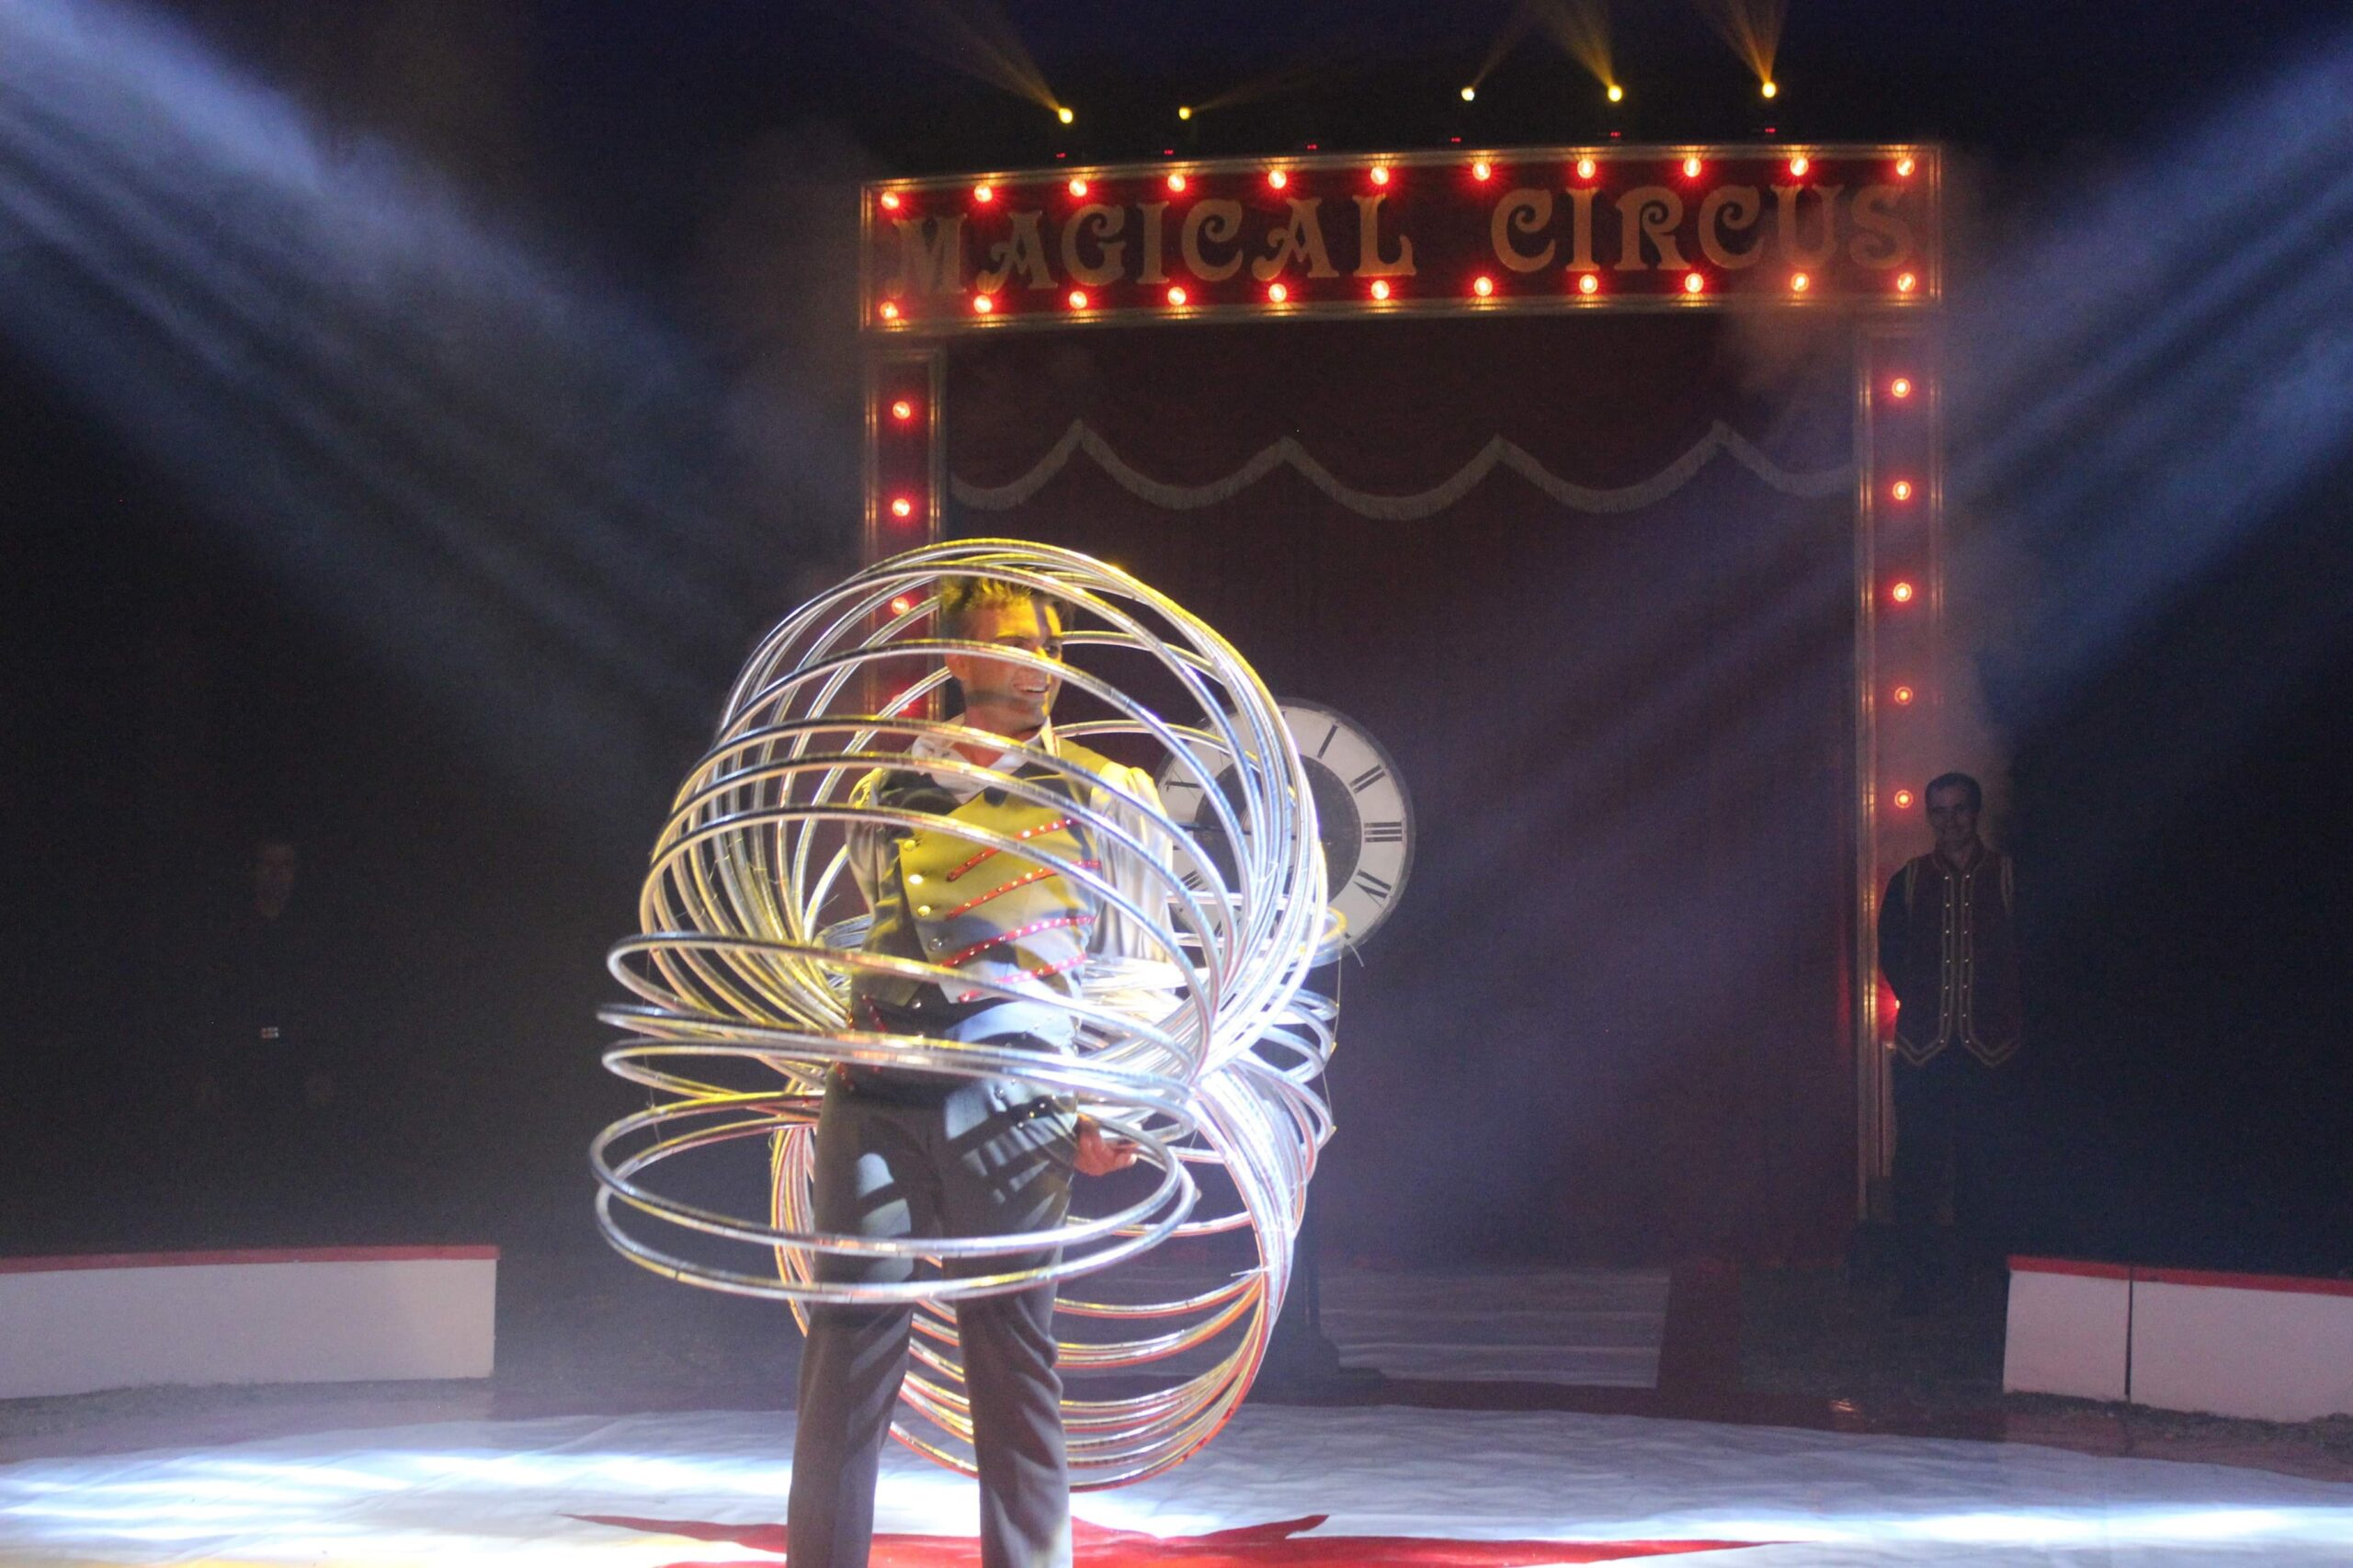 Circus artist in The Netherlands